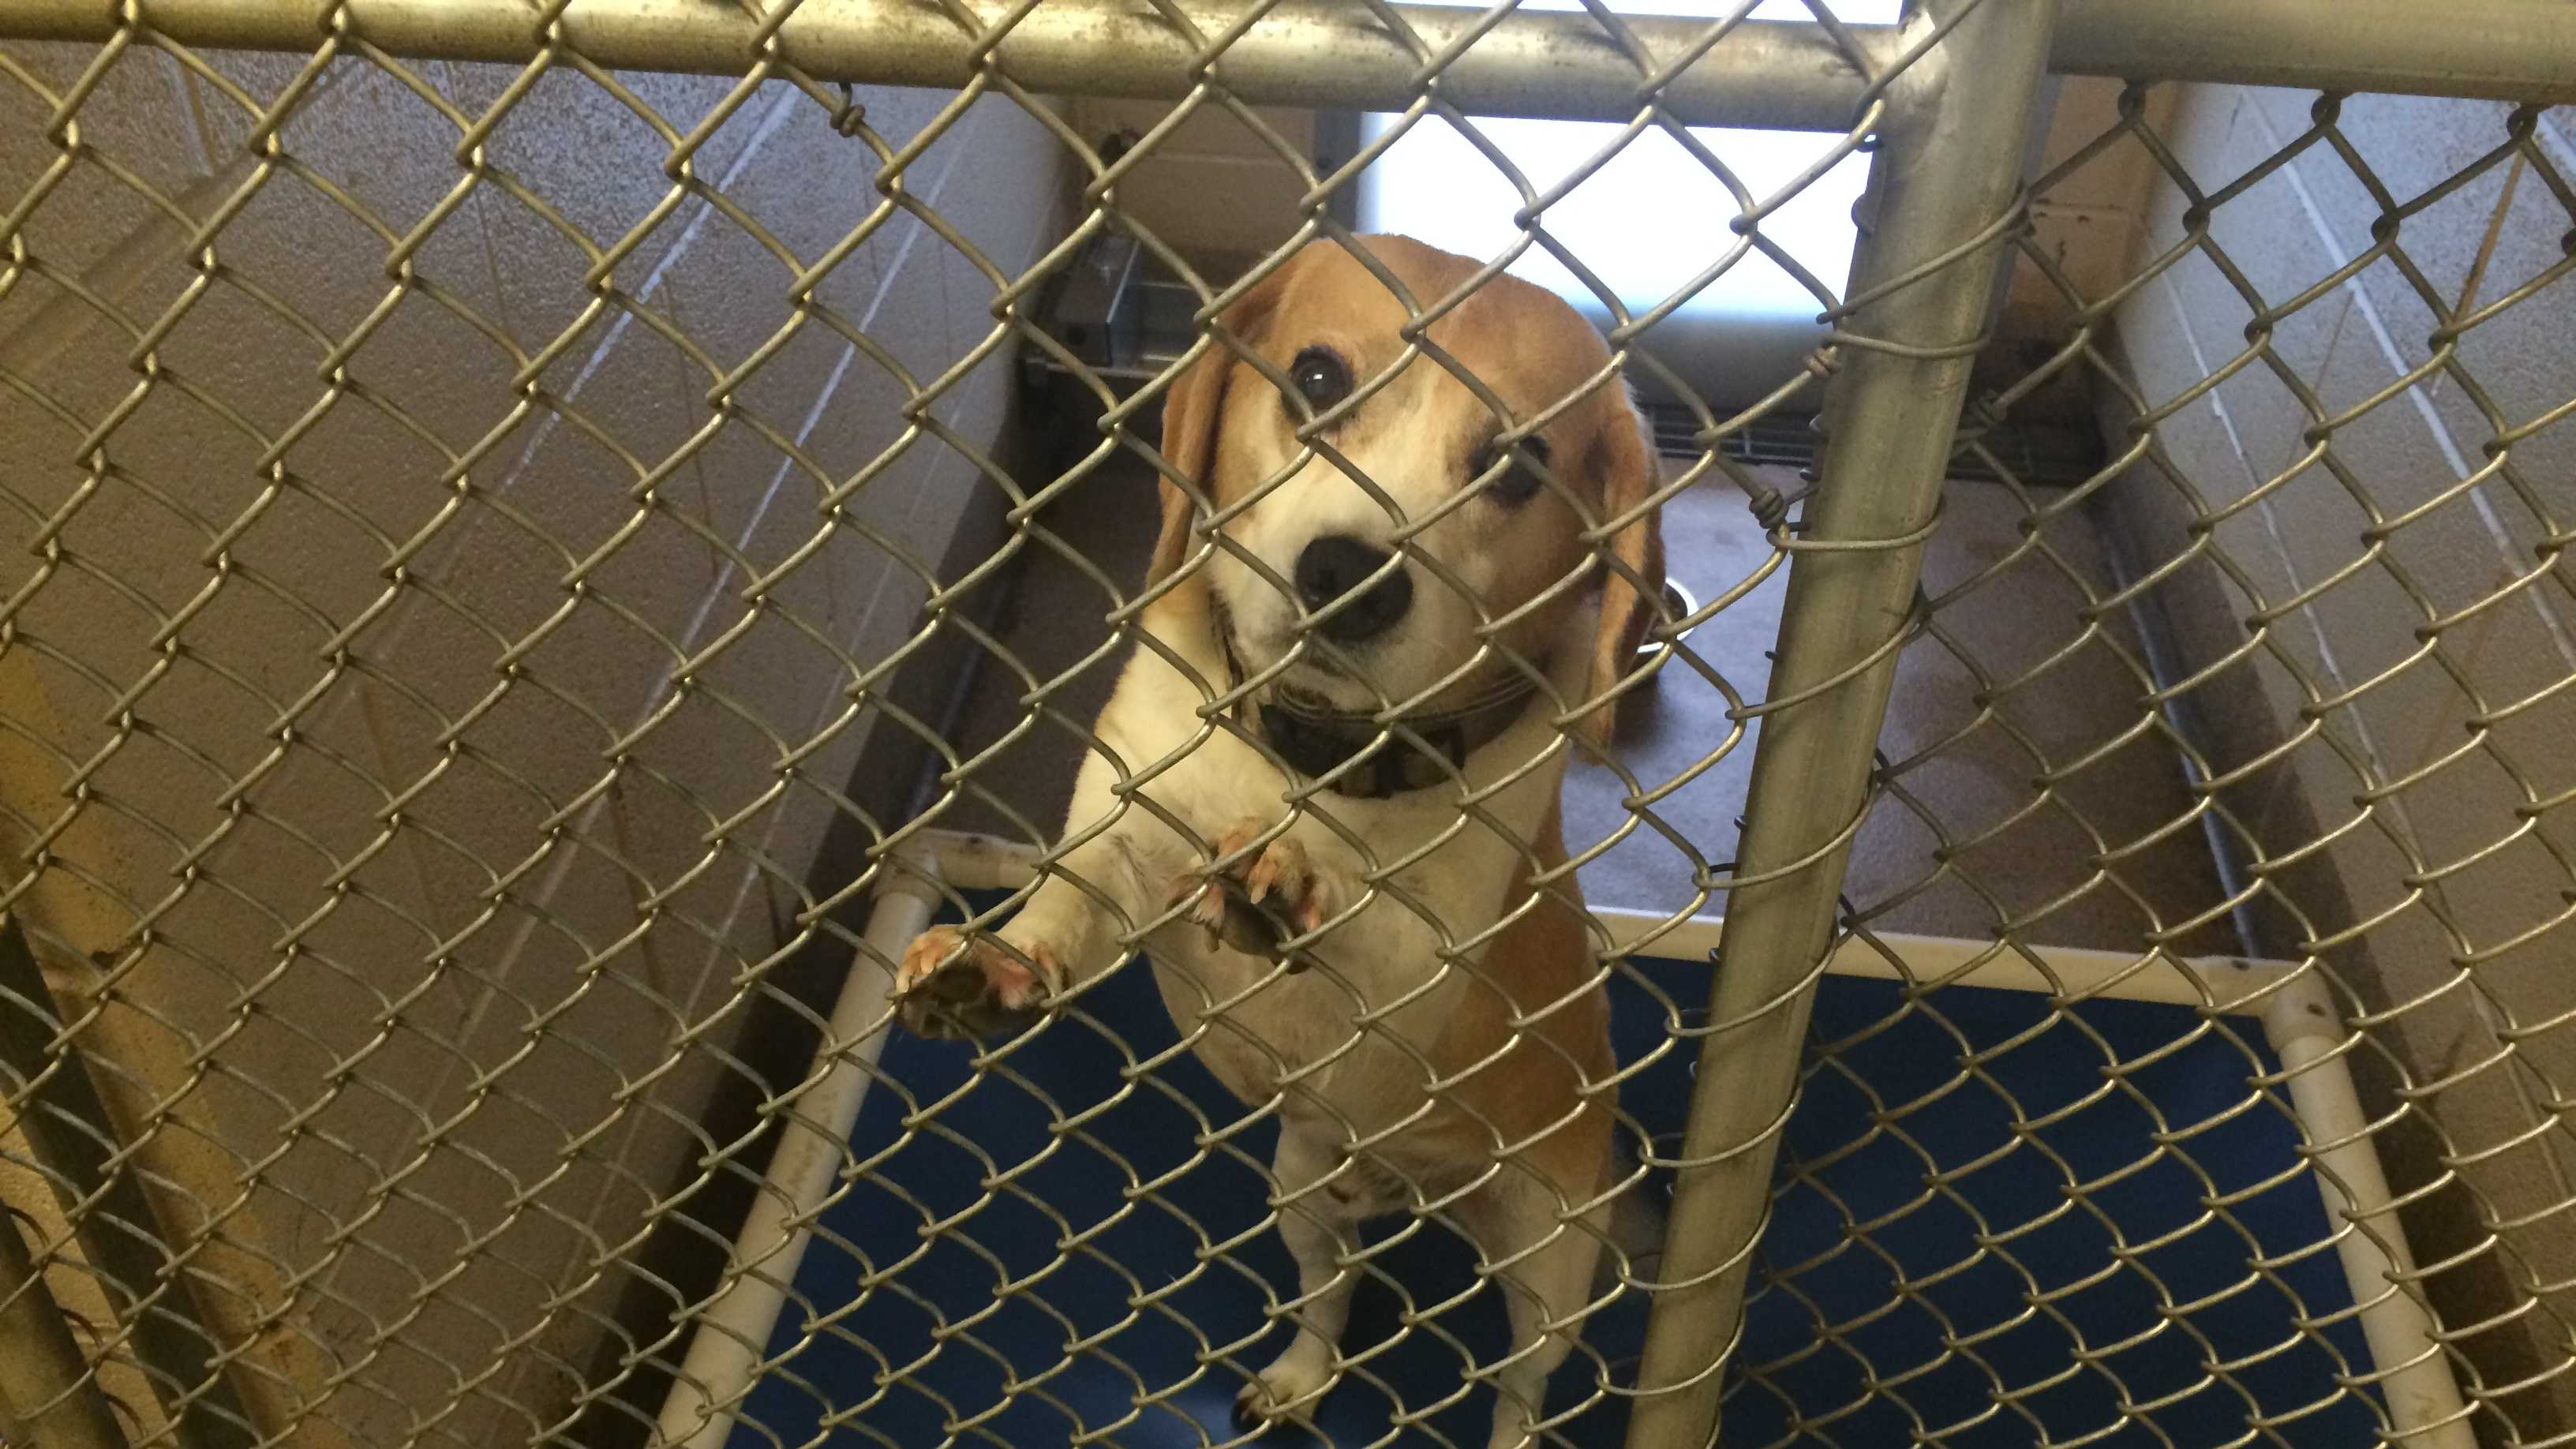 This beagle is one of the three dogs accused of attacking an elderly Henderson County woman.